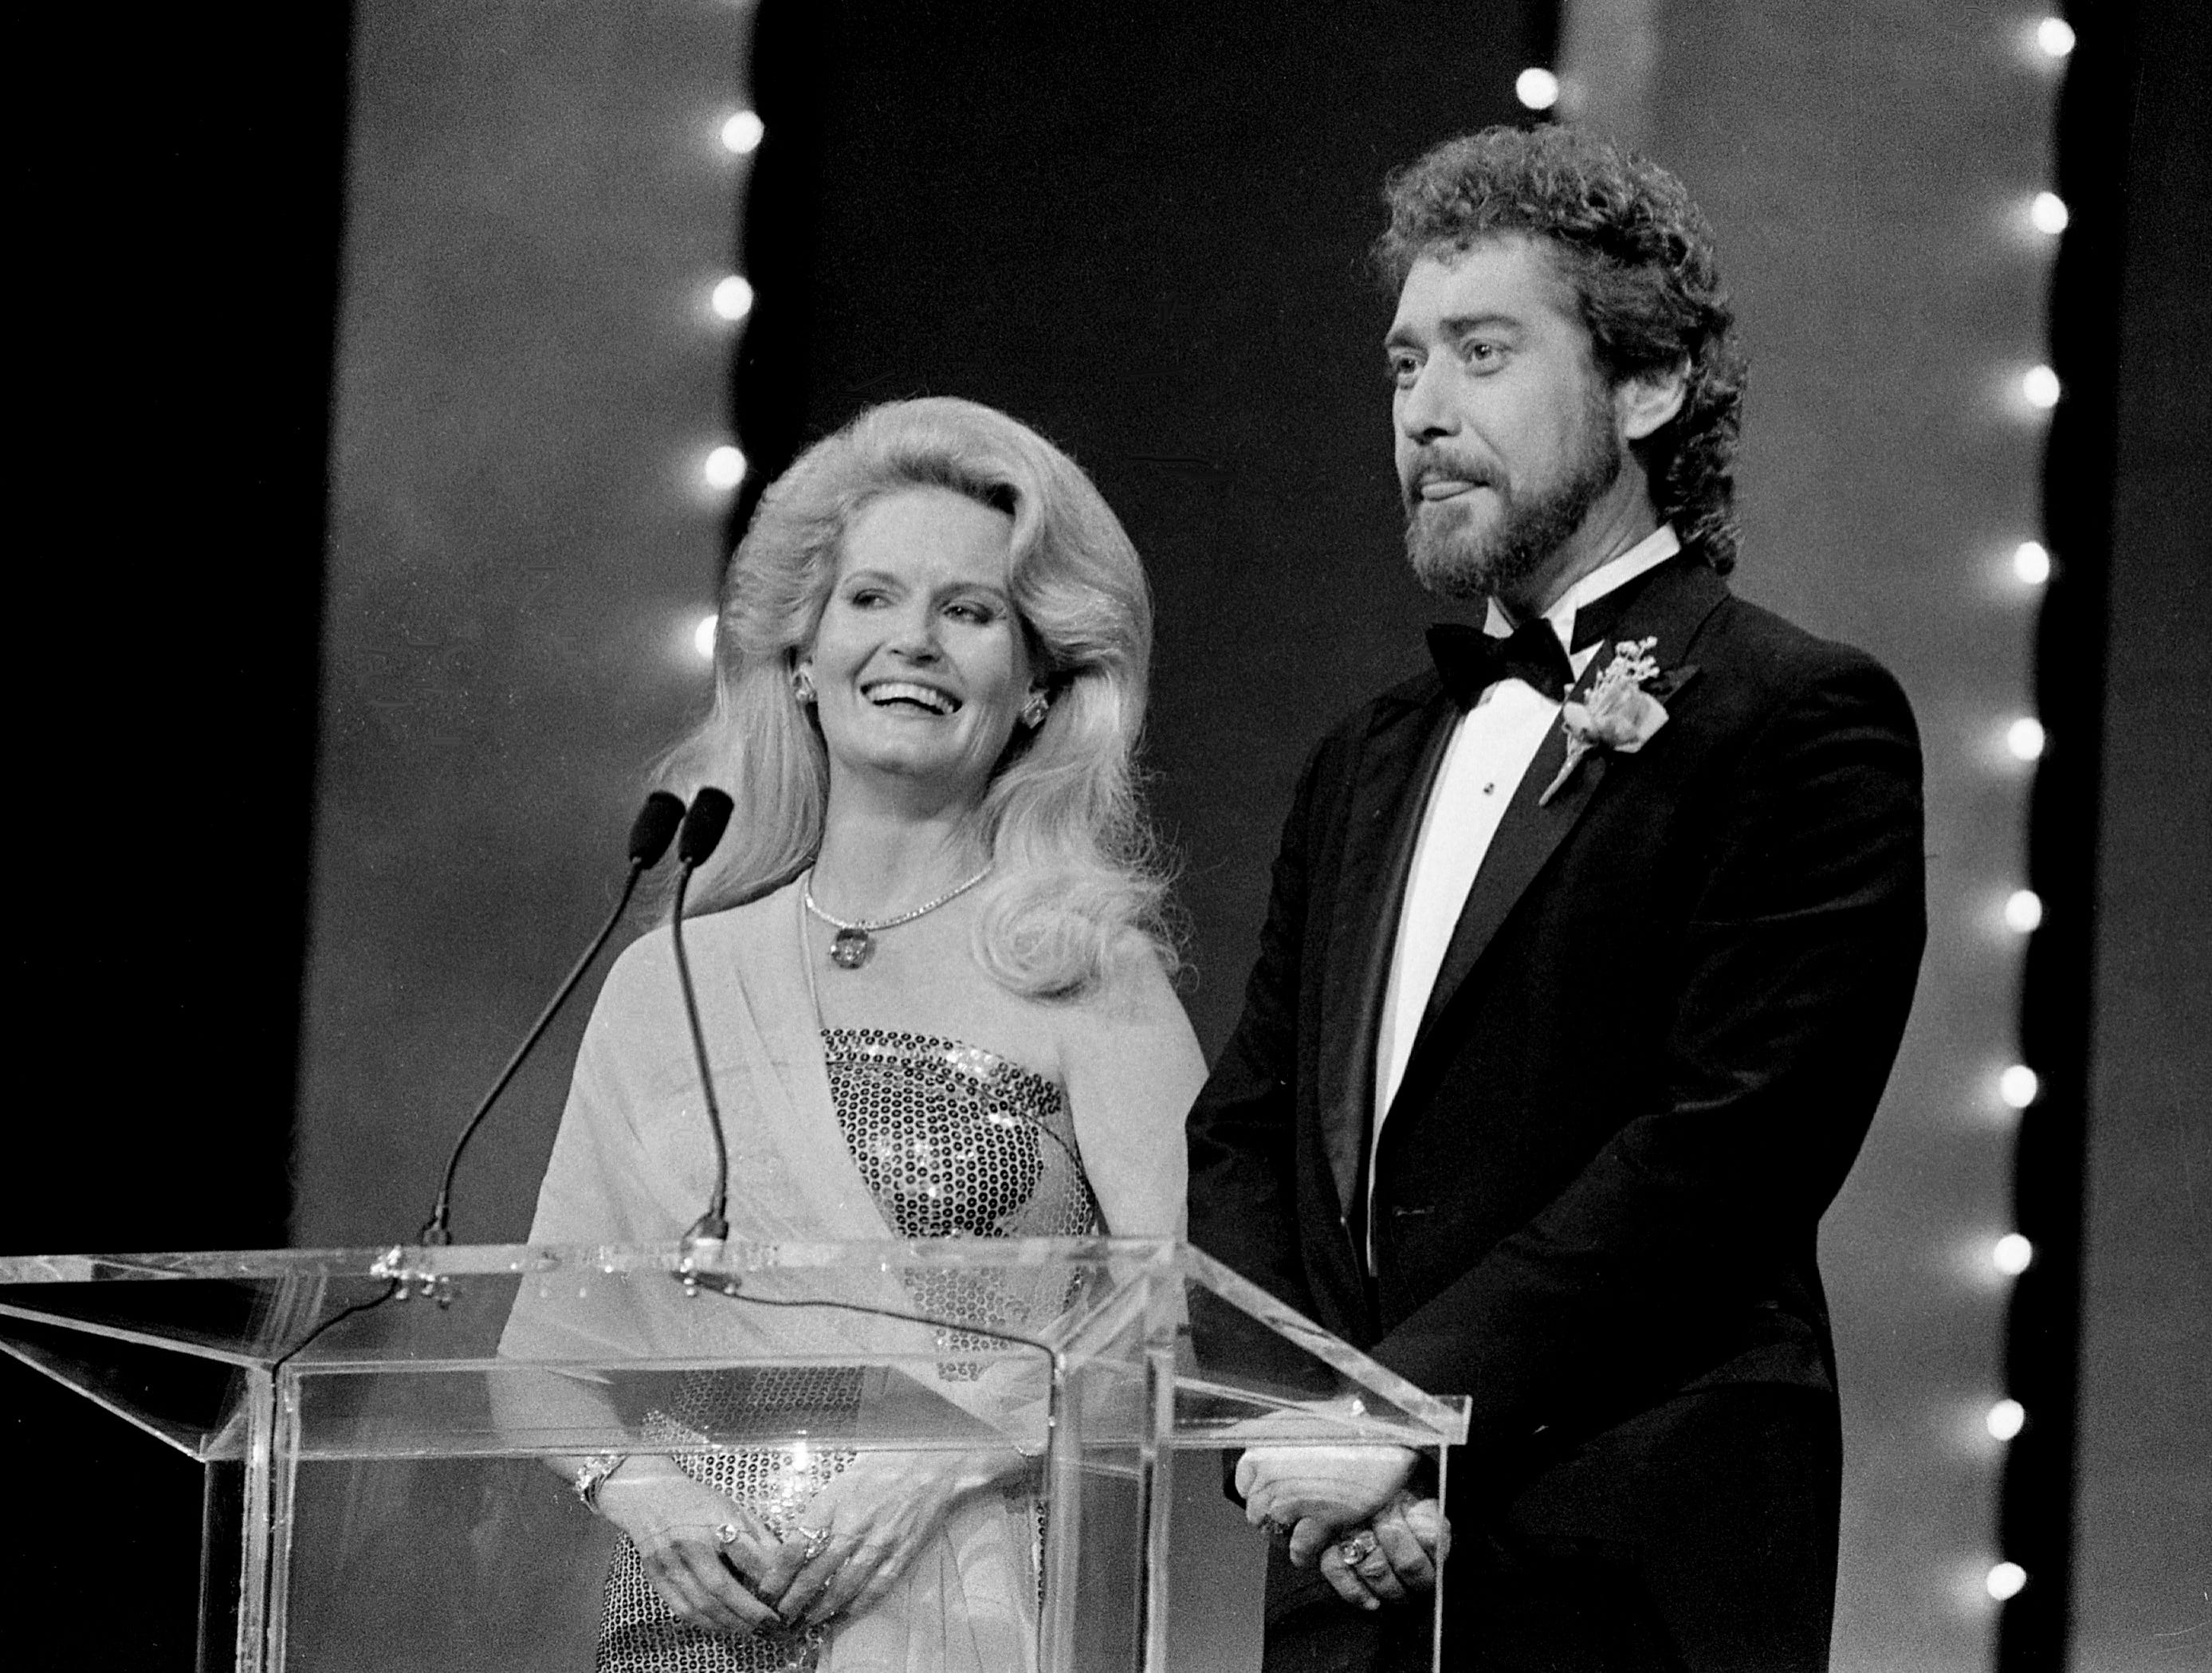 Lynn Anderson, left, and Earl Thomas Conley present the Vocal Duo of the Year Award during the 18th annual CMA Awards show Oct. 8, 1984.